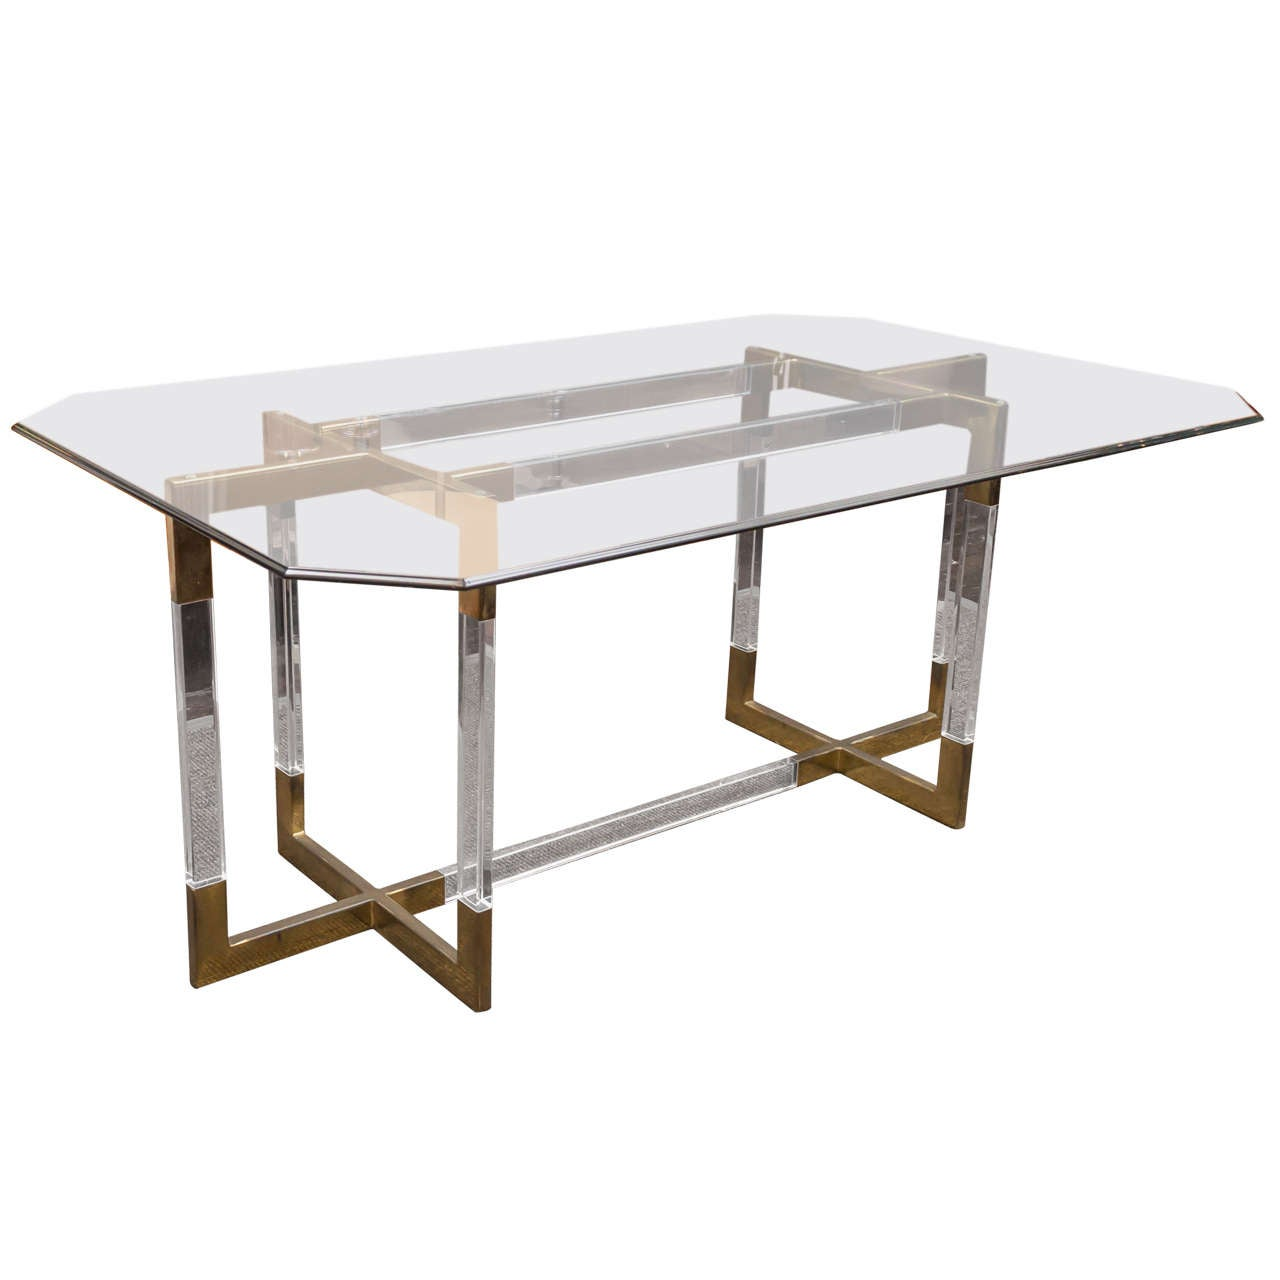 Charles Hollis Jones Metric Line Lucite Dining Table 1